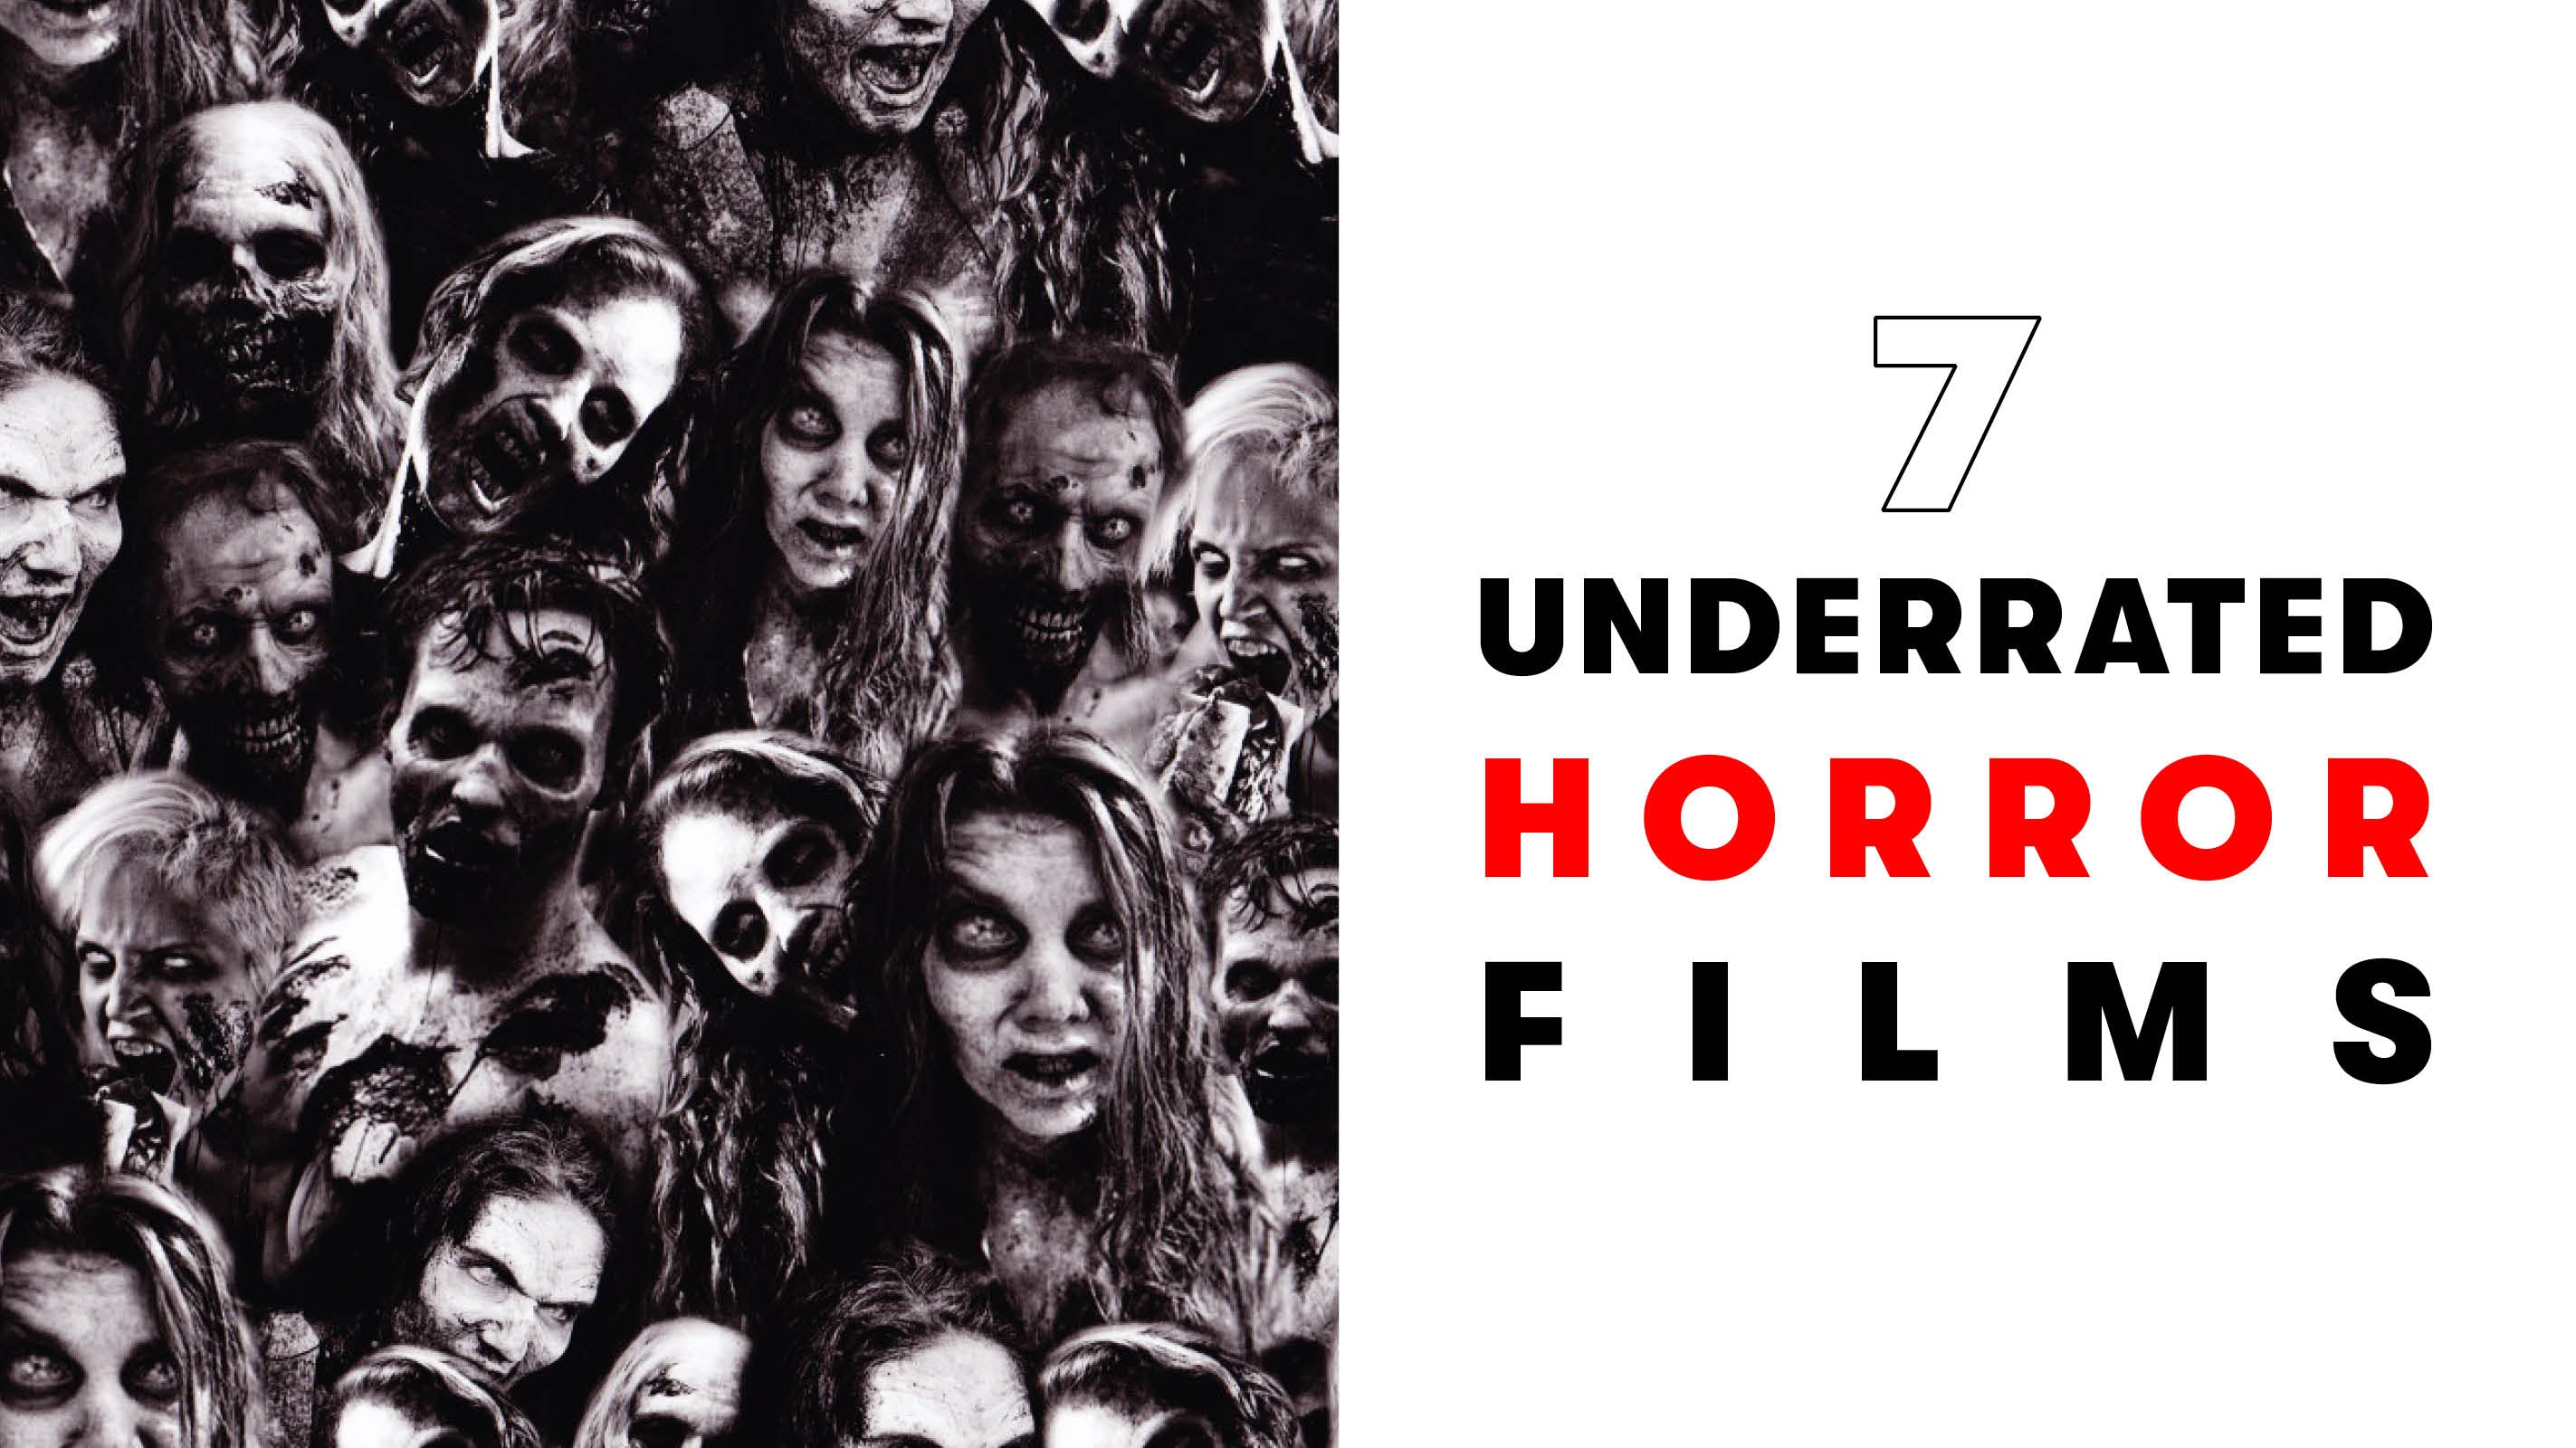 7 UNDERRATED HORROR FILMS